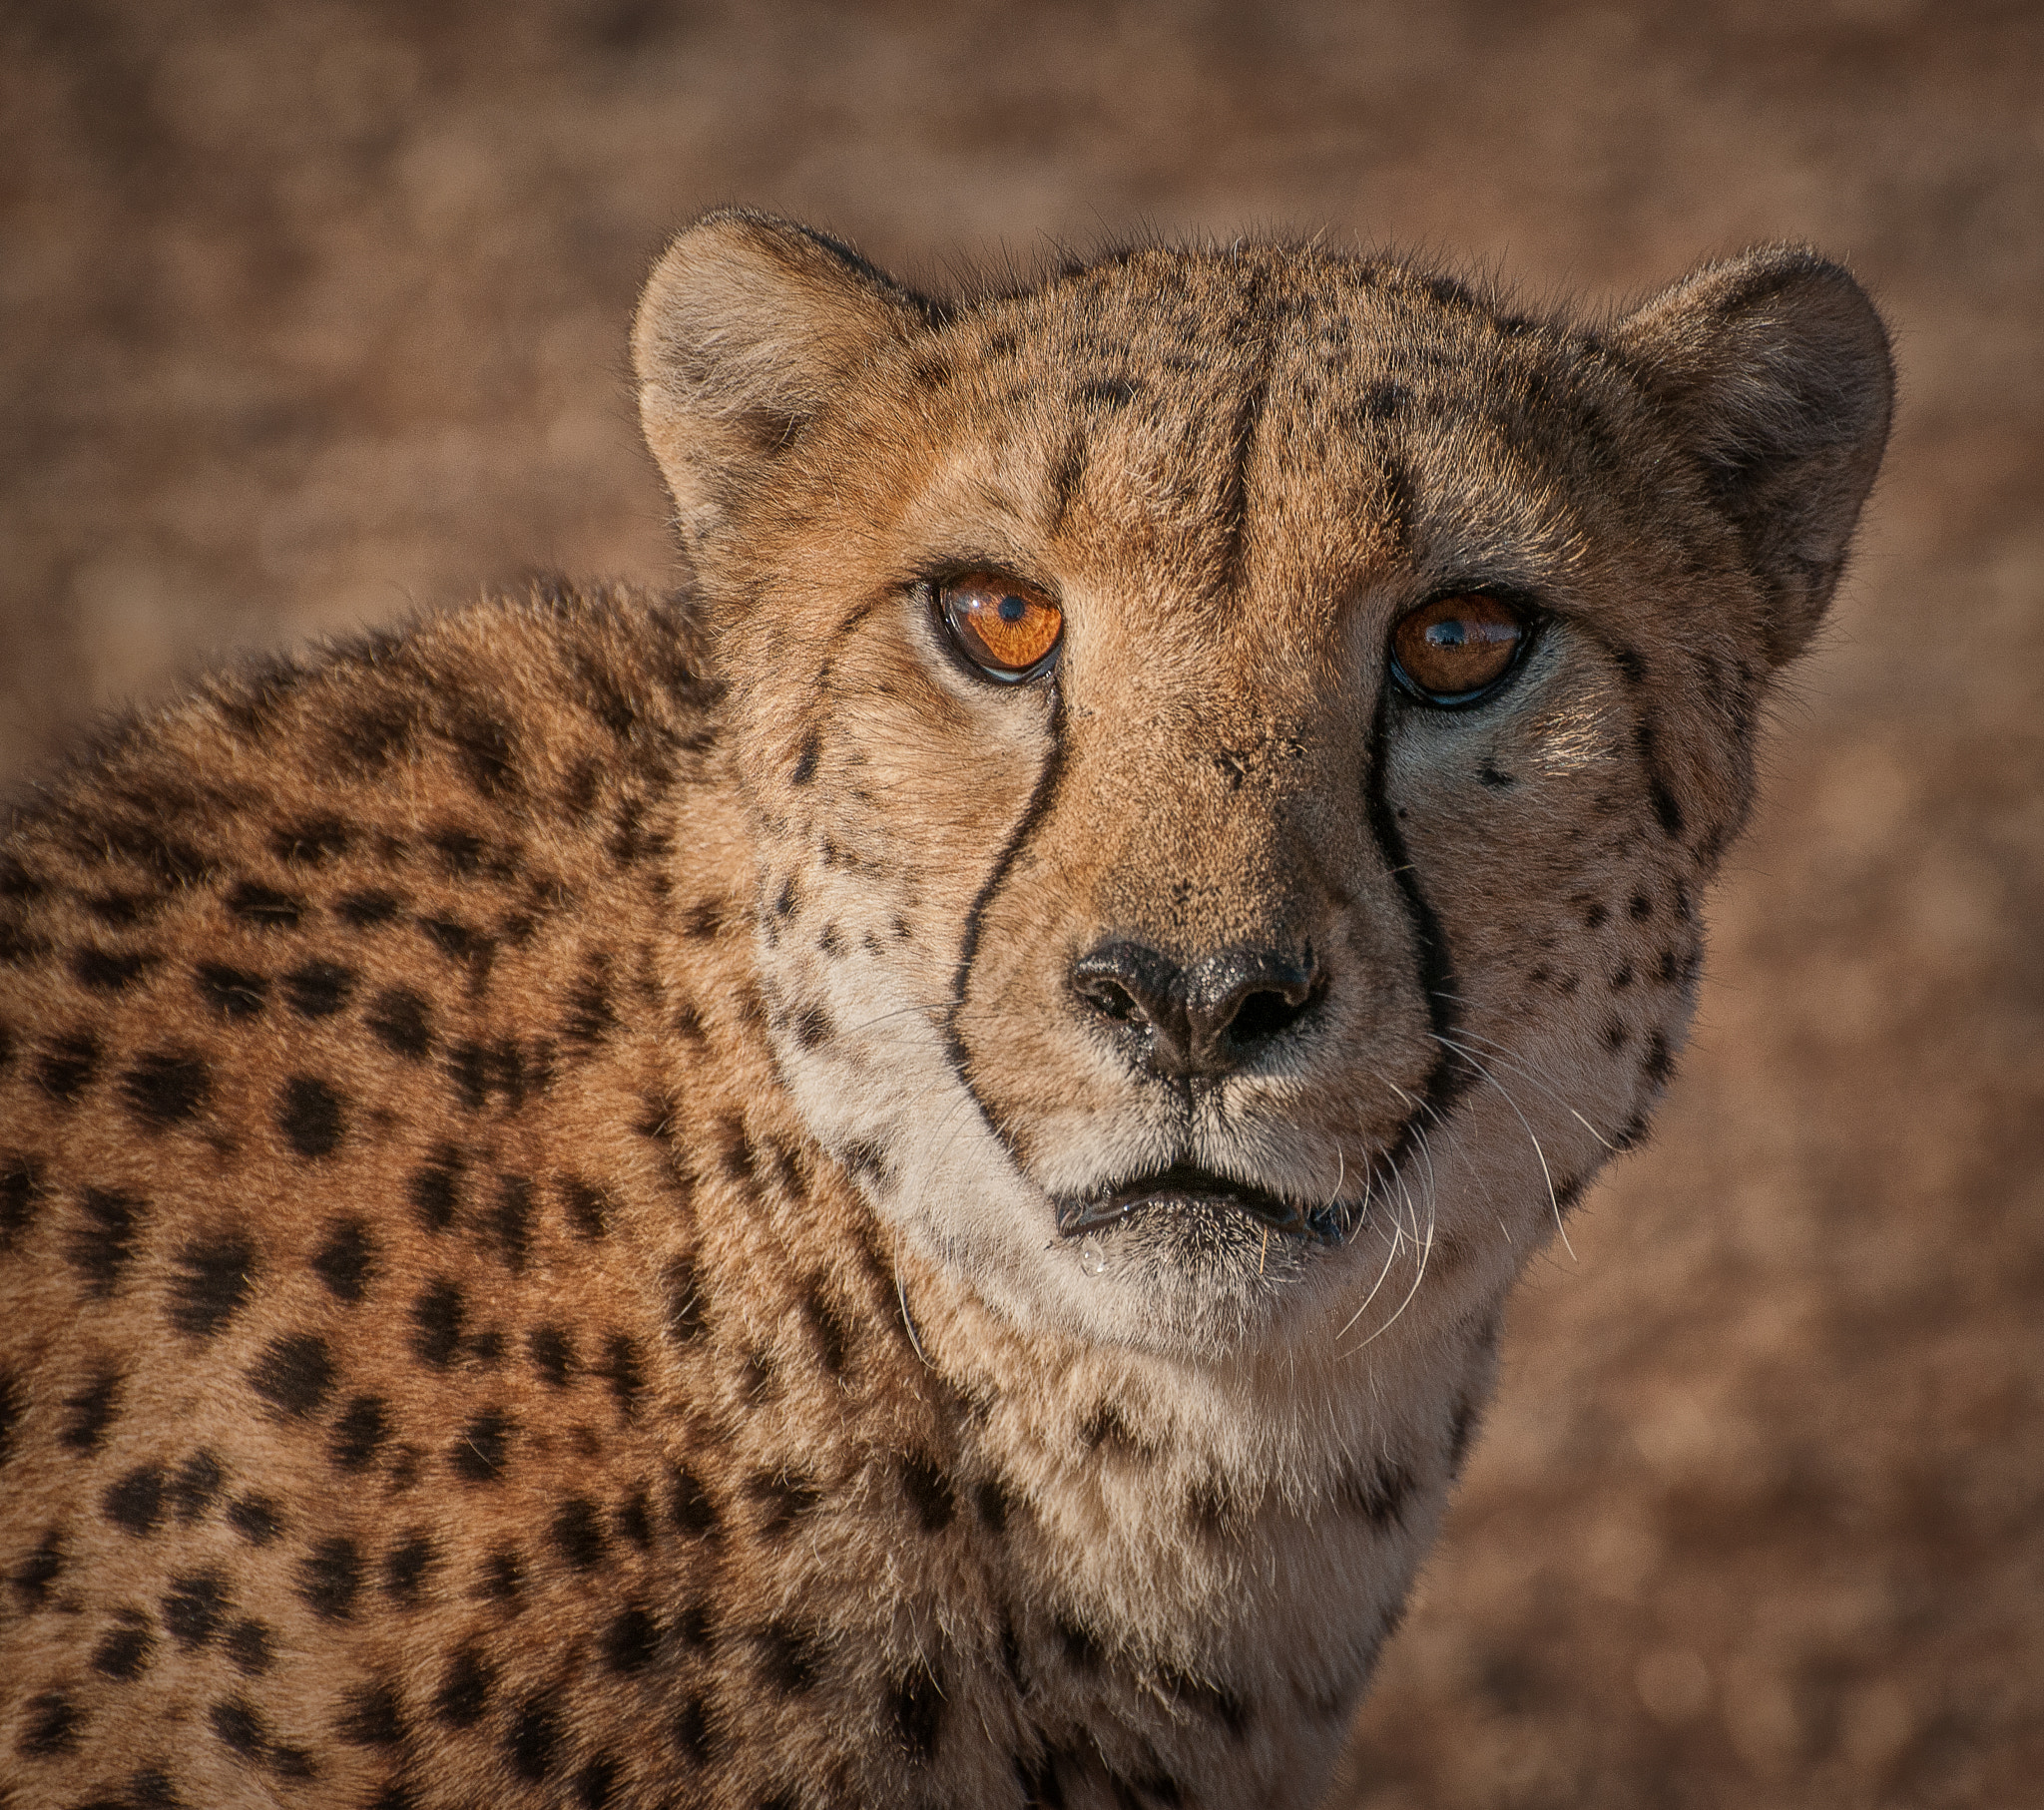 Namibian Cheetah portrait by Louise, imported from 500px